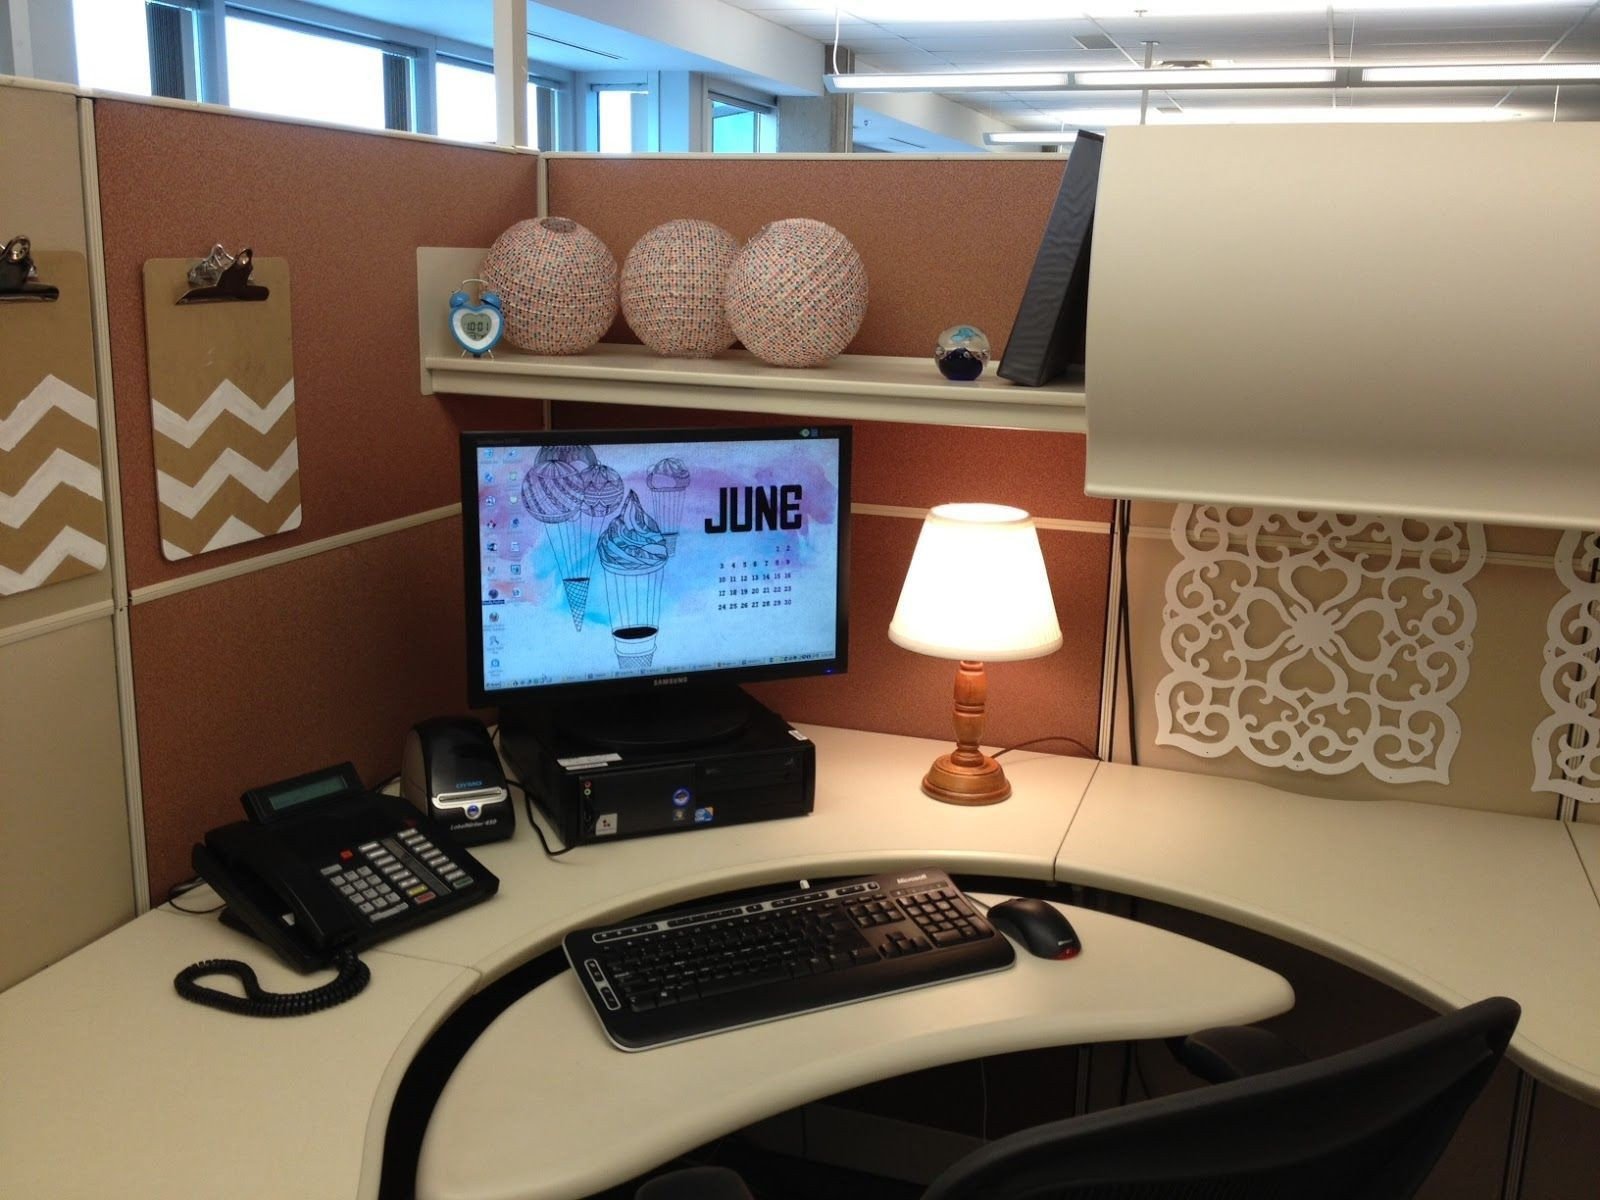 Office Decor Ideas for Work Fresh 20 Cubicle Decor Ideas to Make Your Fice Style Work as Hard as You Do